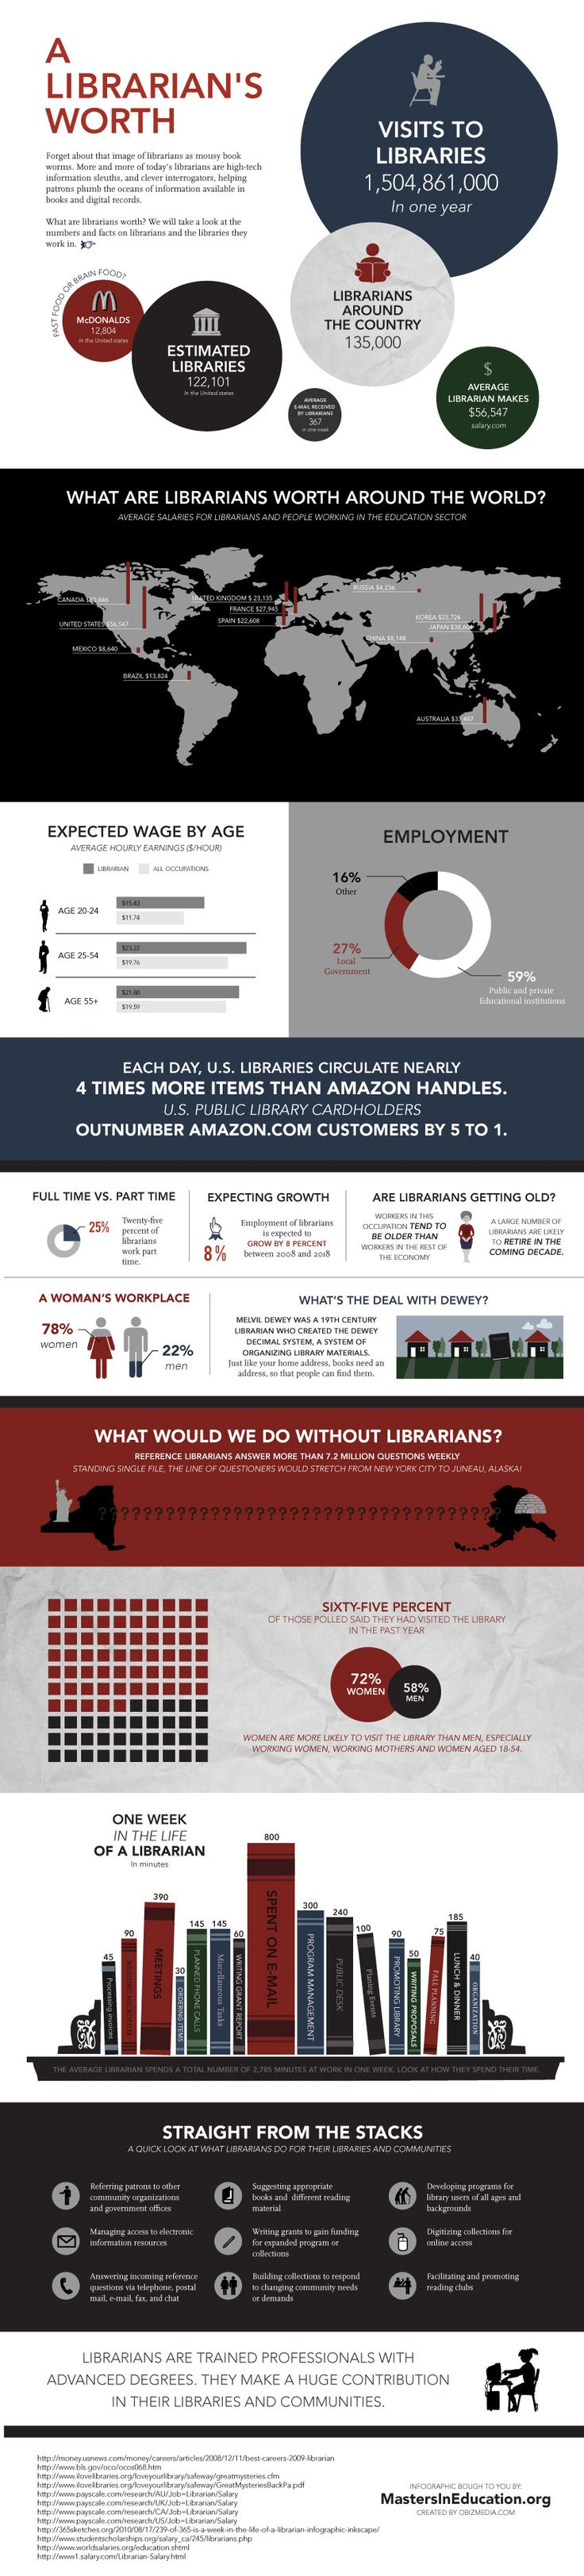 New The Value of Librarians! – Stephen's Lighthouse